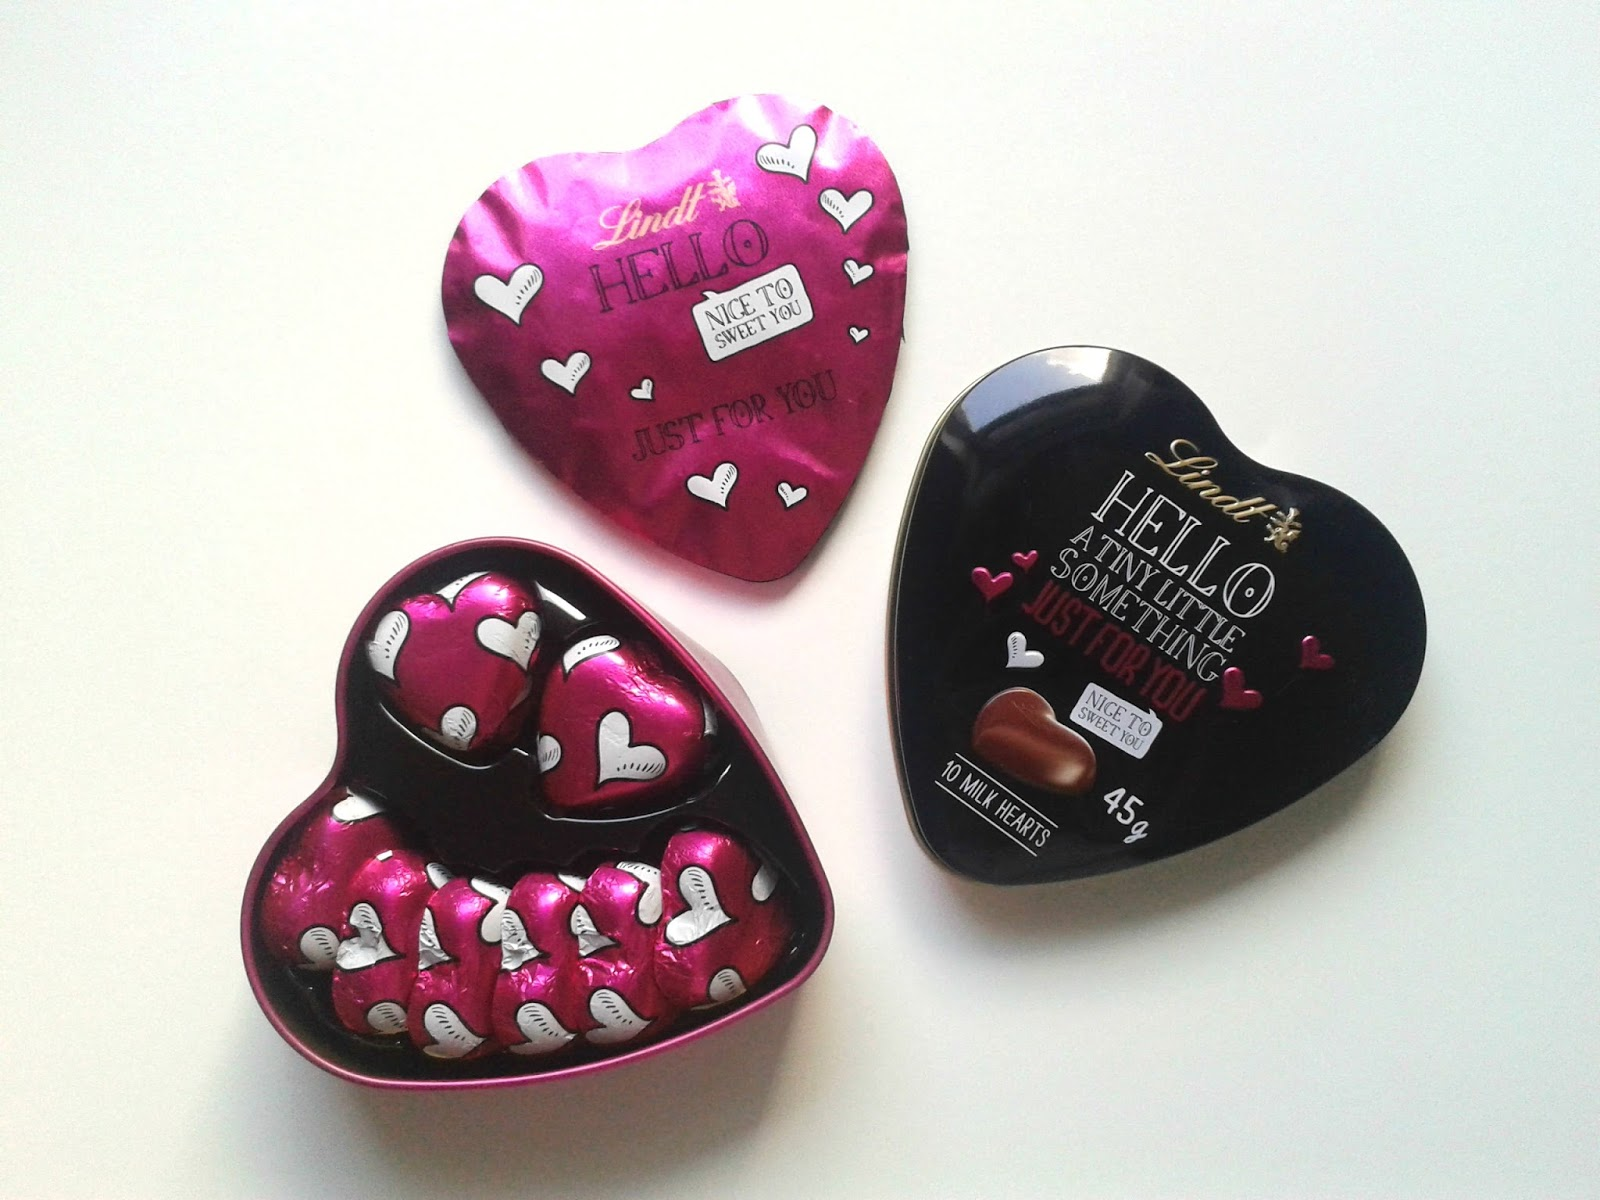 Lindt Hello Milk Hearts August Degustabox Review